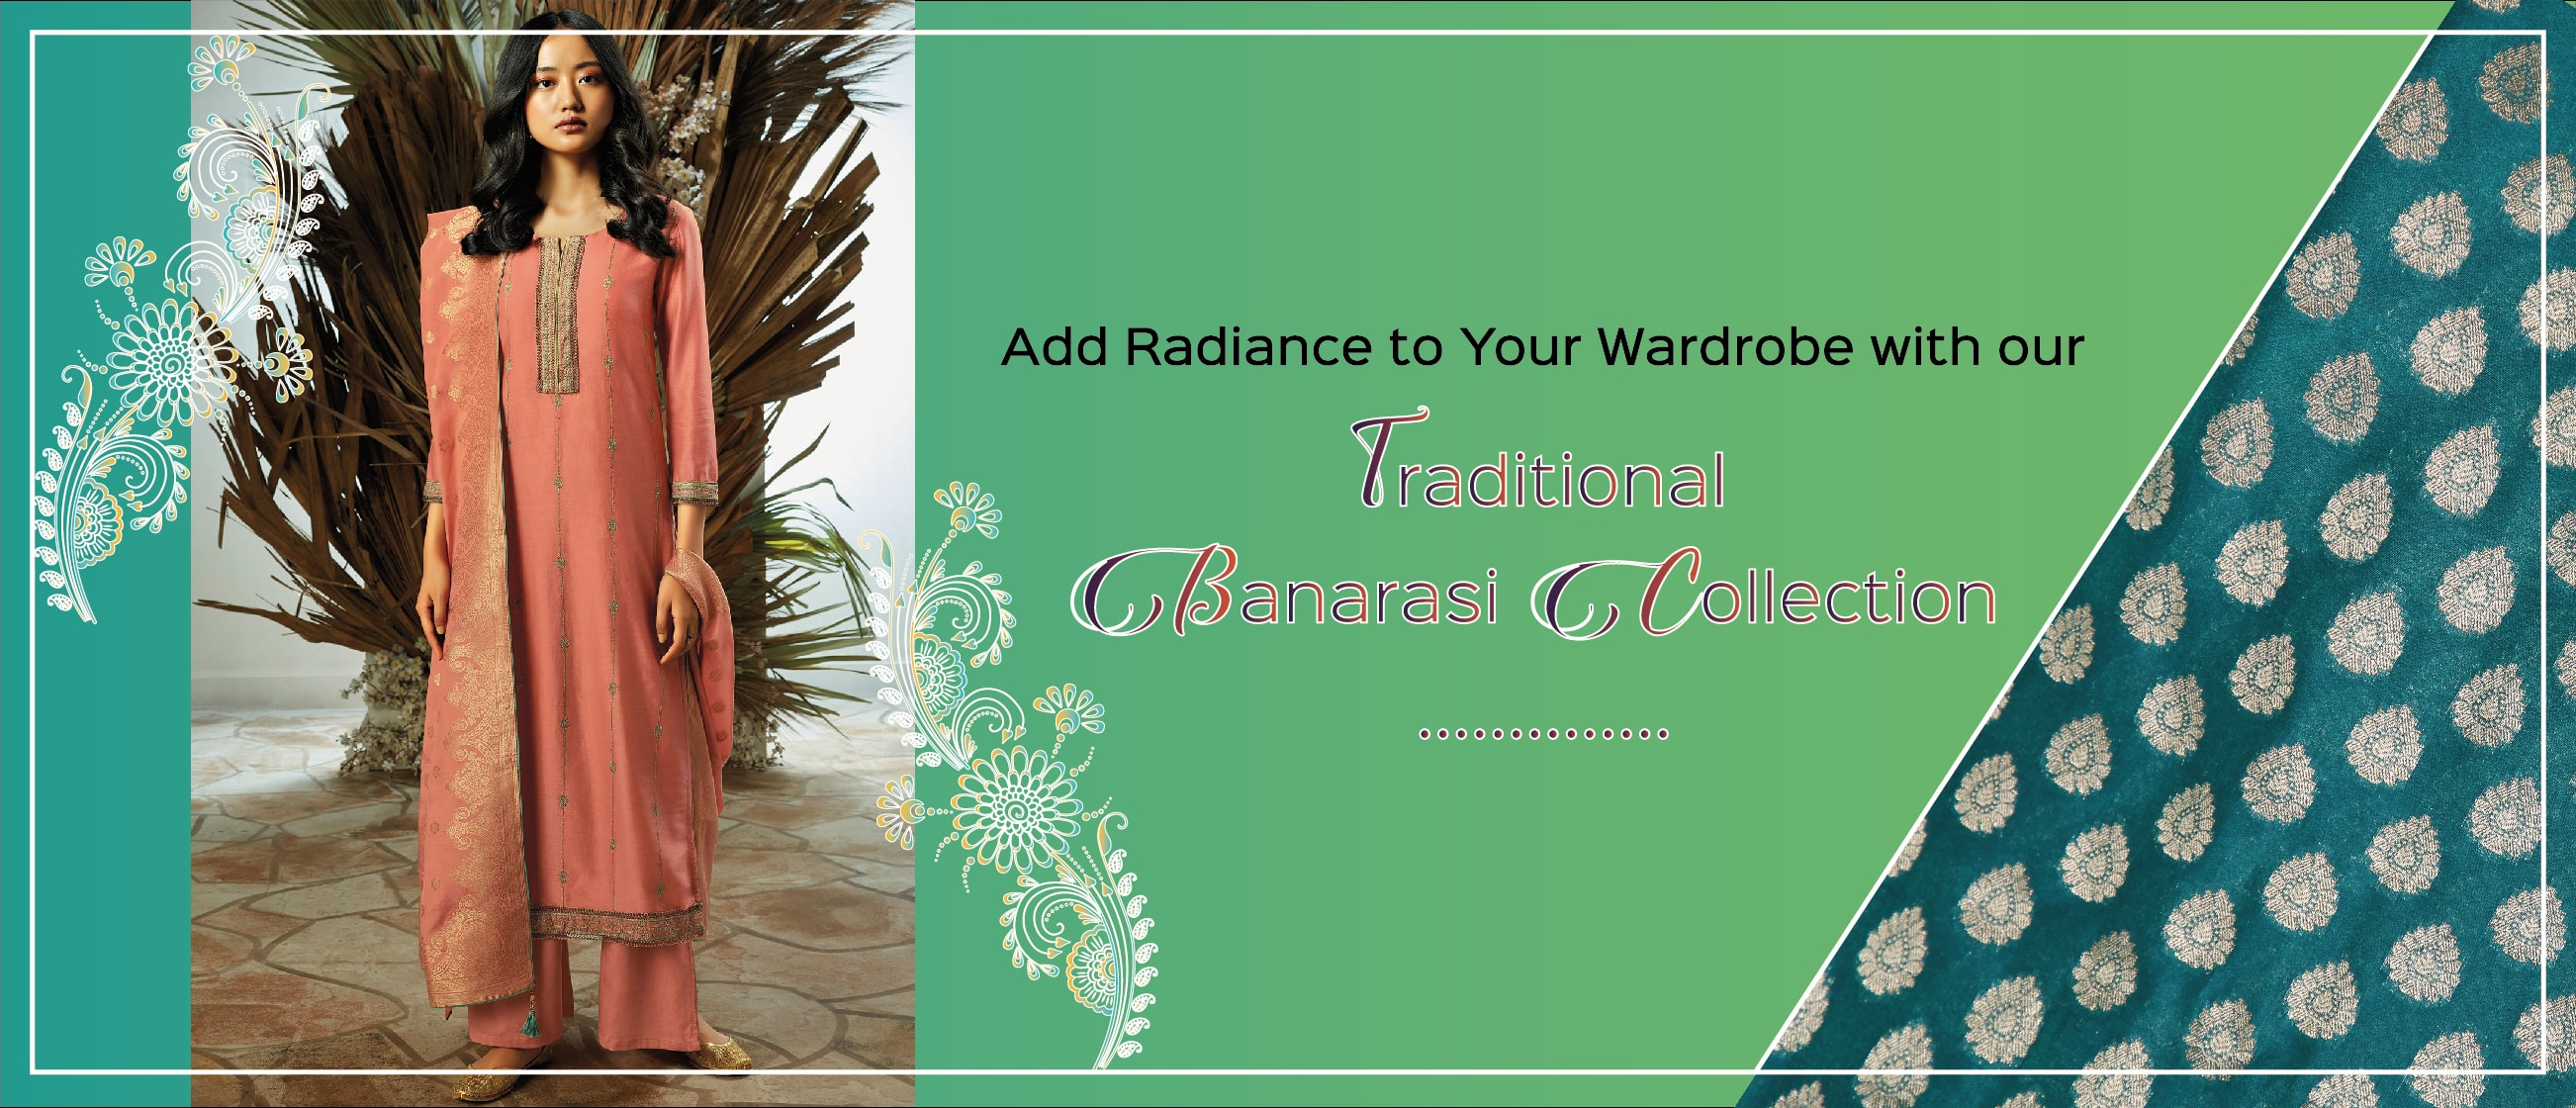 Add Radiance to Your Wardrobe with our Traditional Banarasi Collection